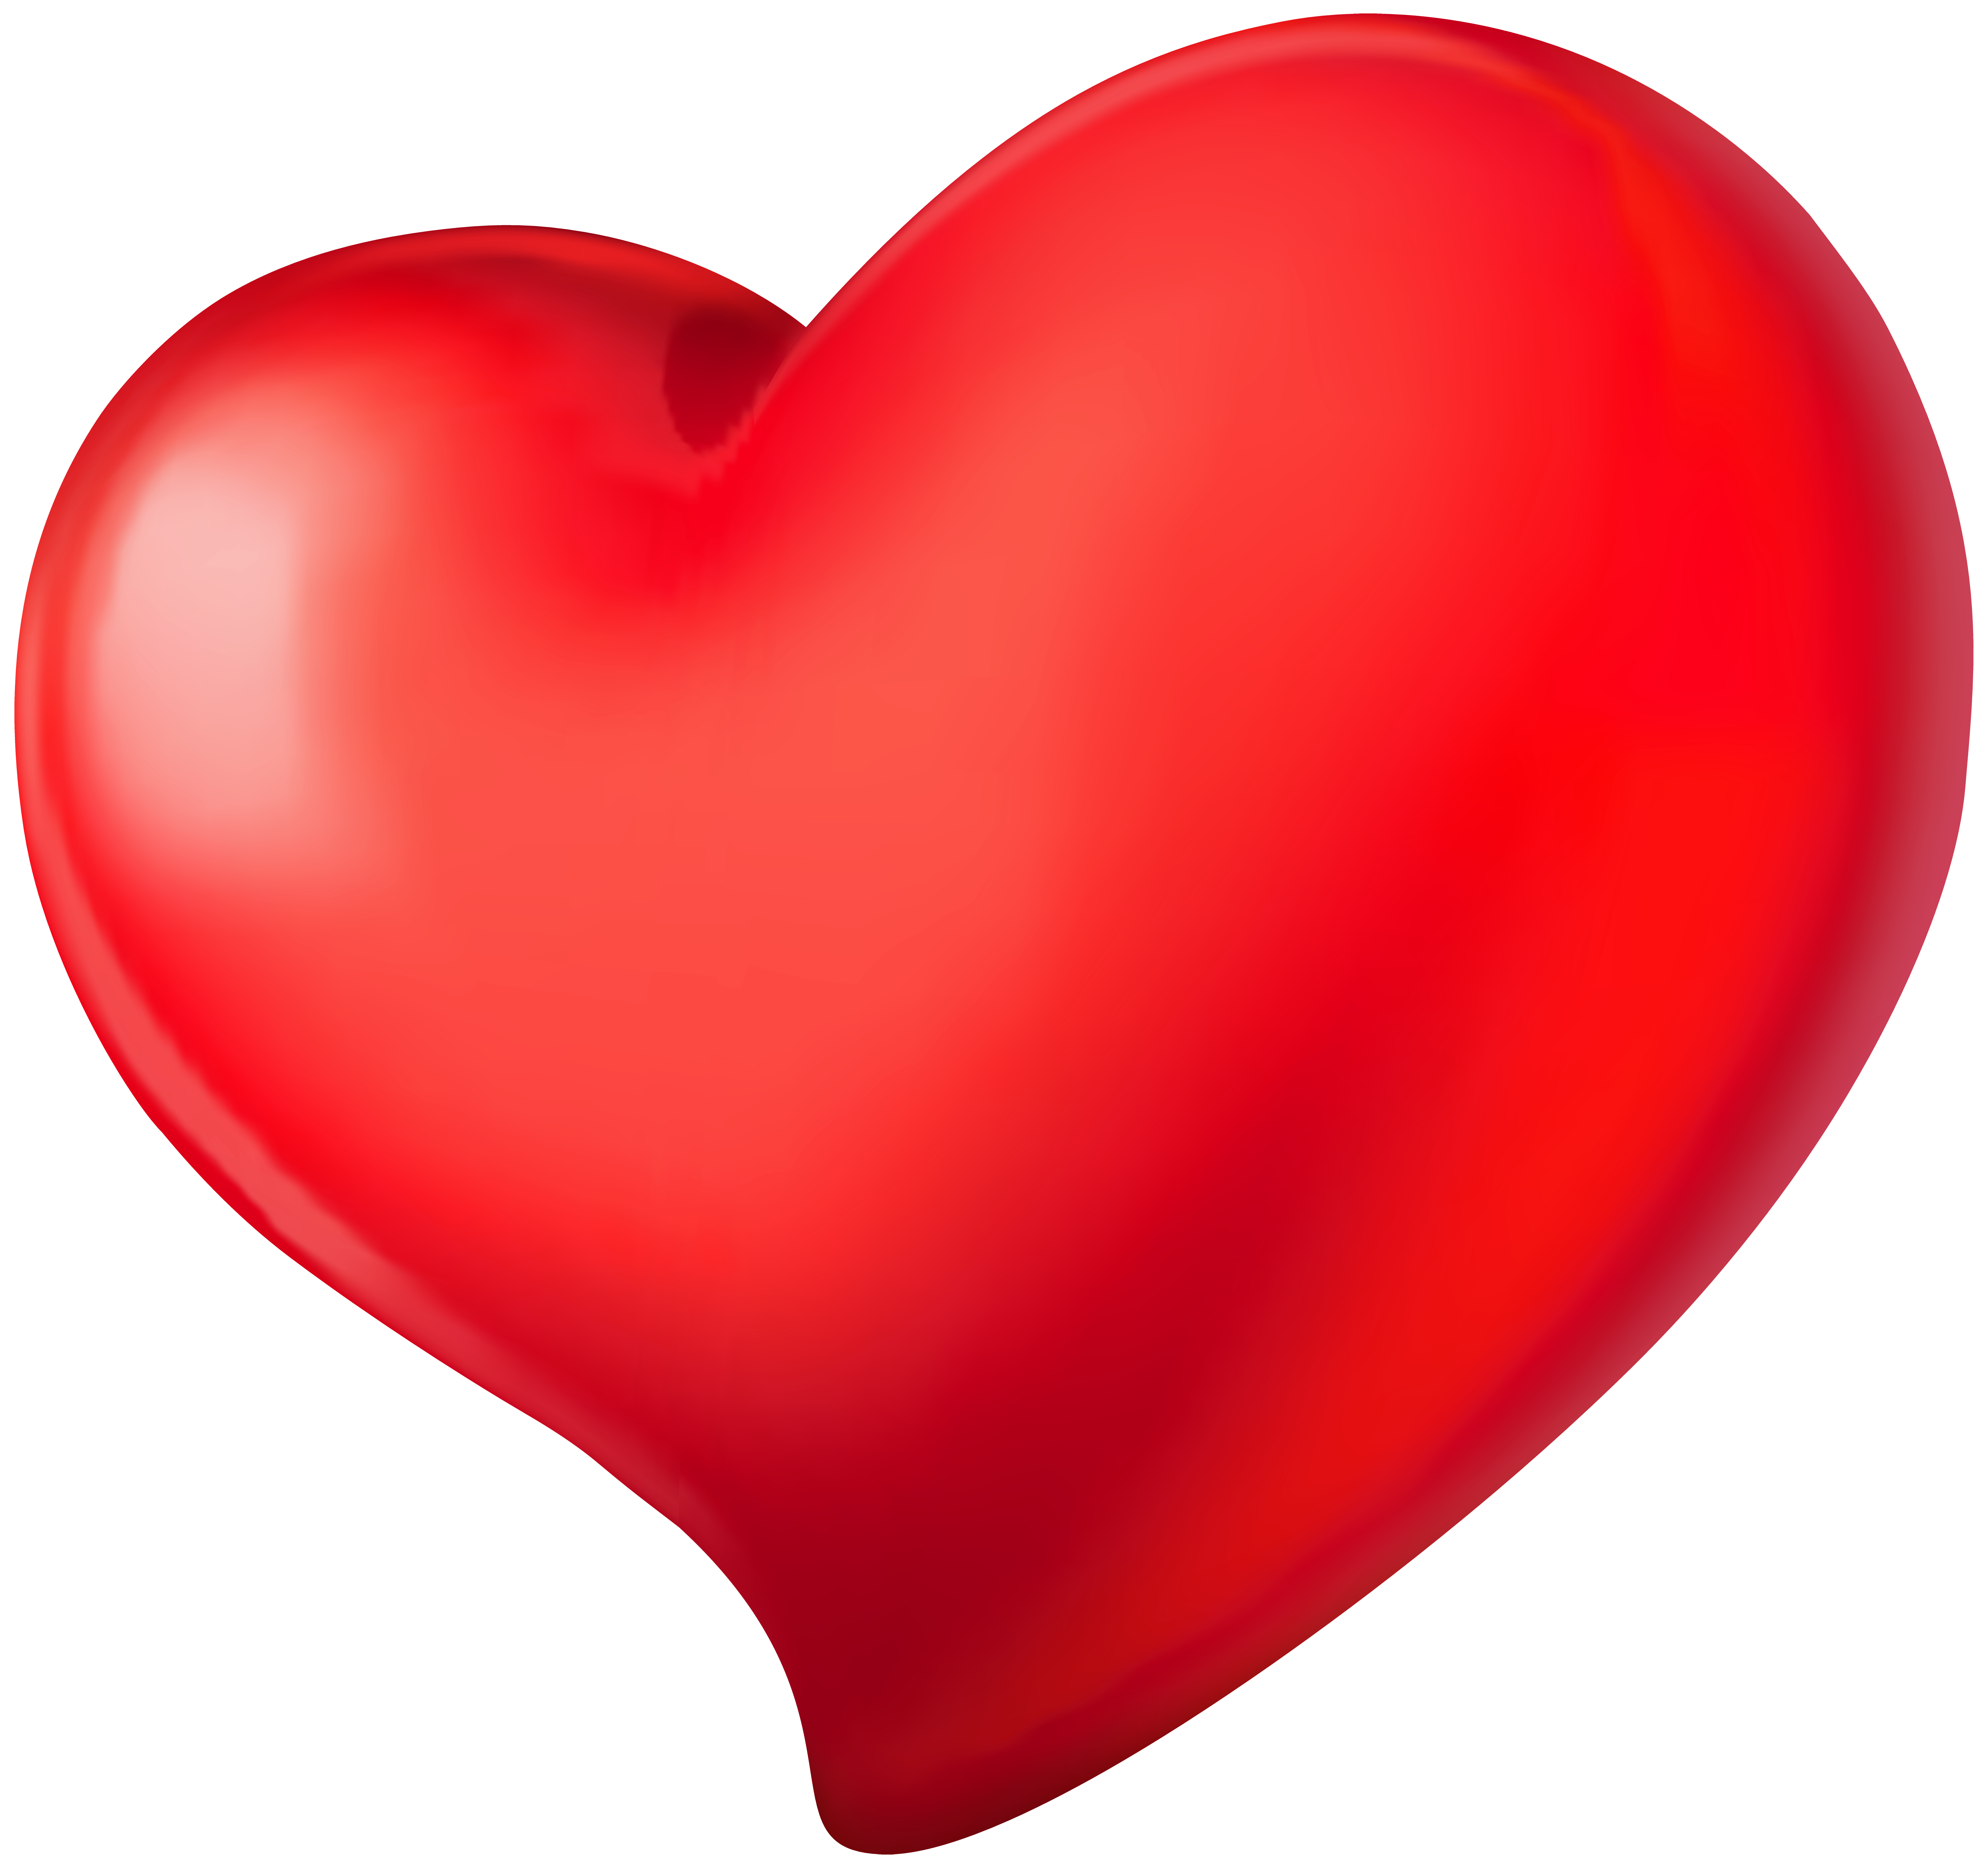 Piano clipart heart. Red transparent png clip